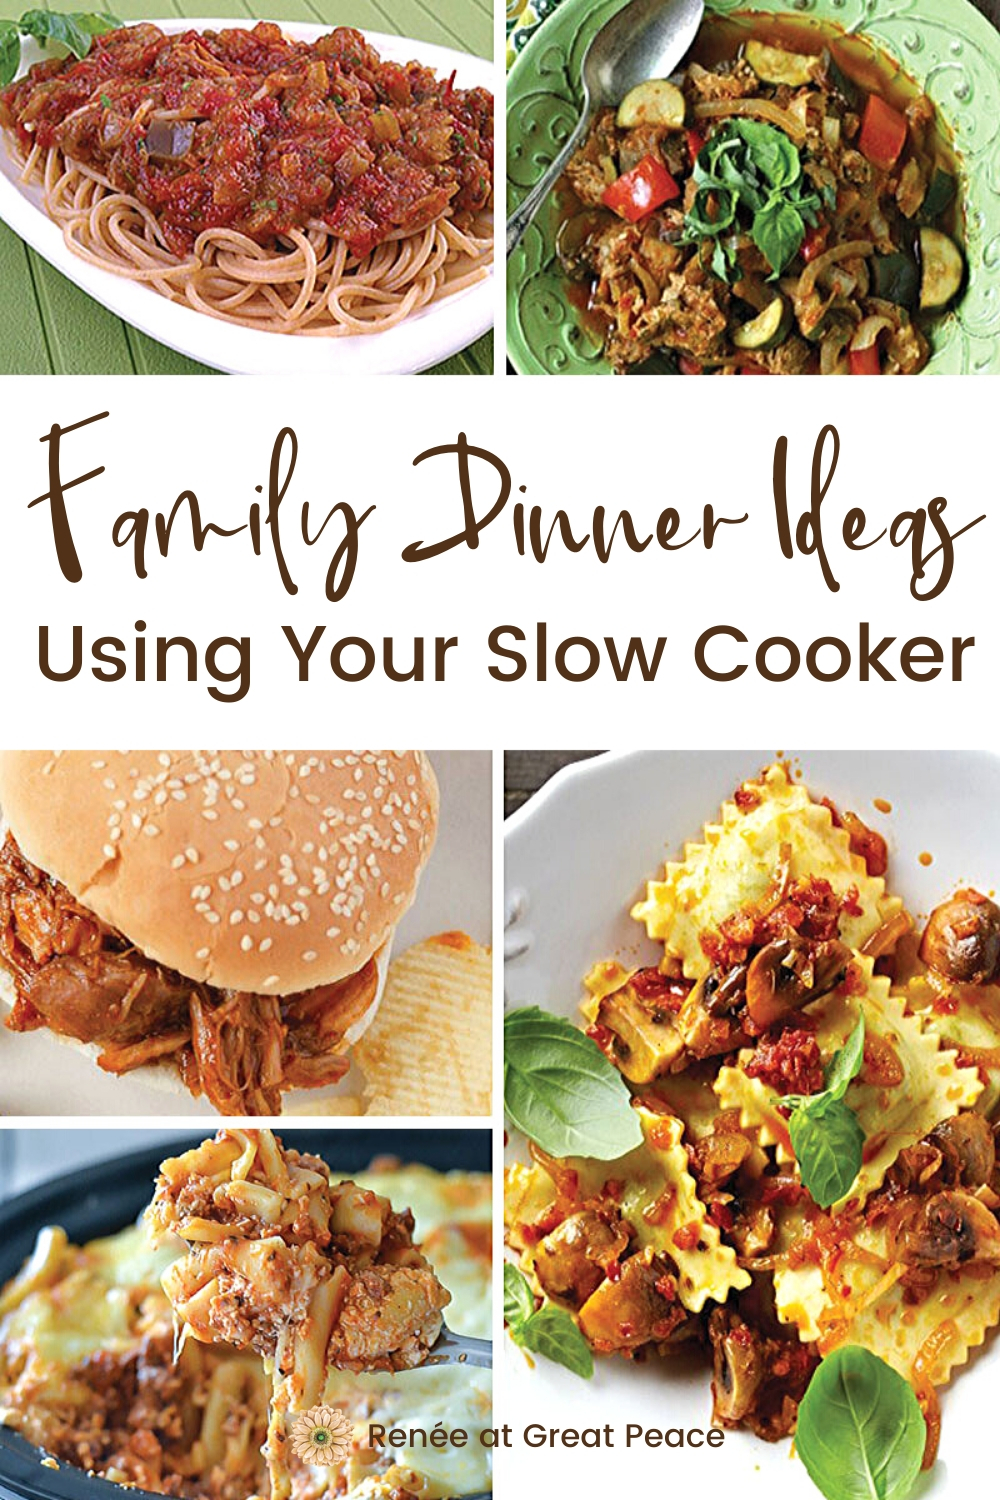 Summer Dinner Ideas Using Your Slow Cooker